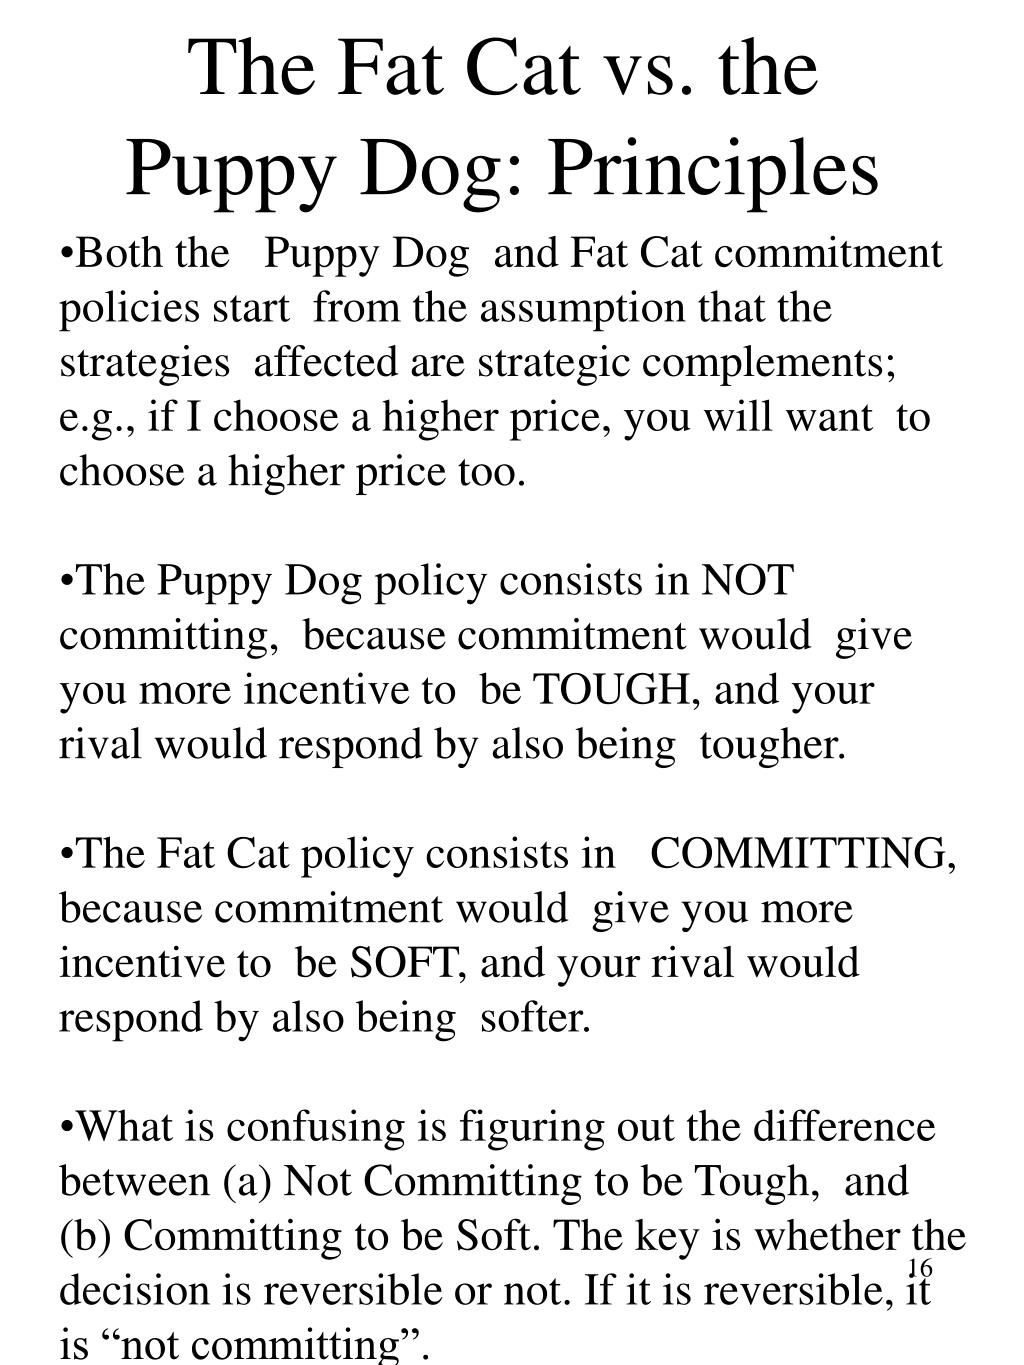 The Fat Cat vs. the Puppy Dog: Principles